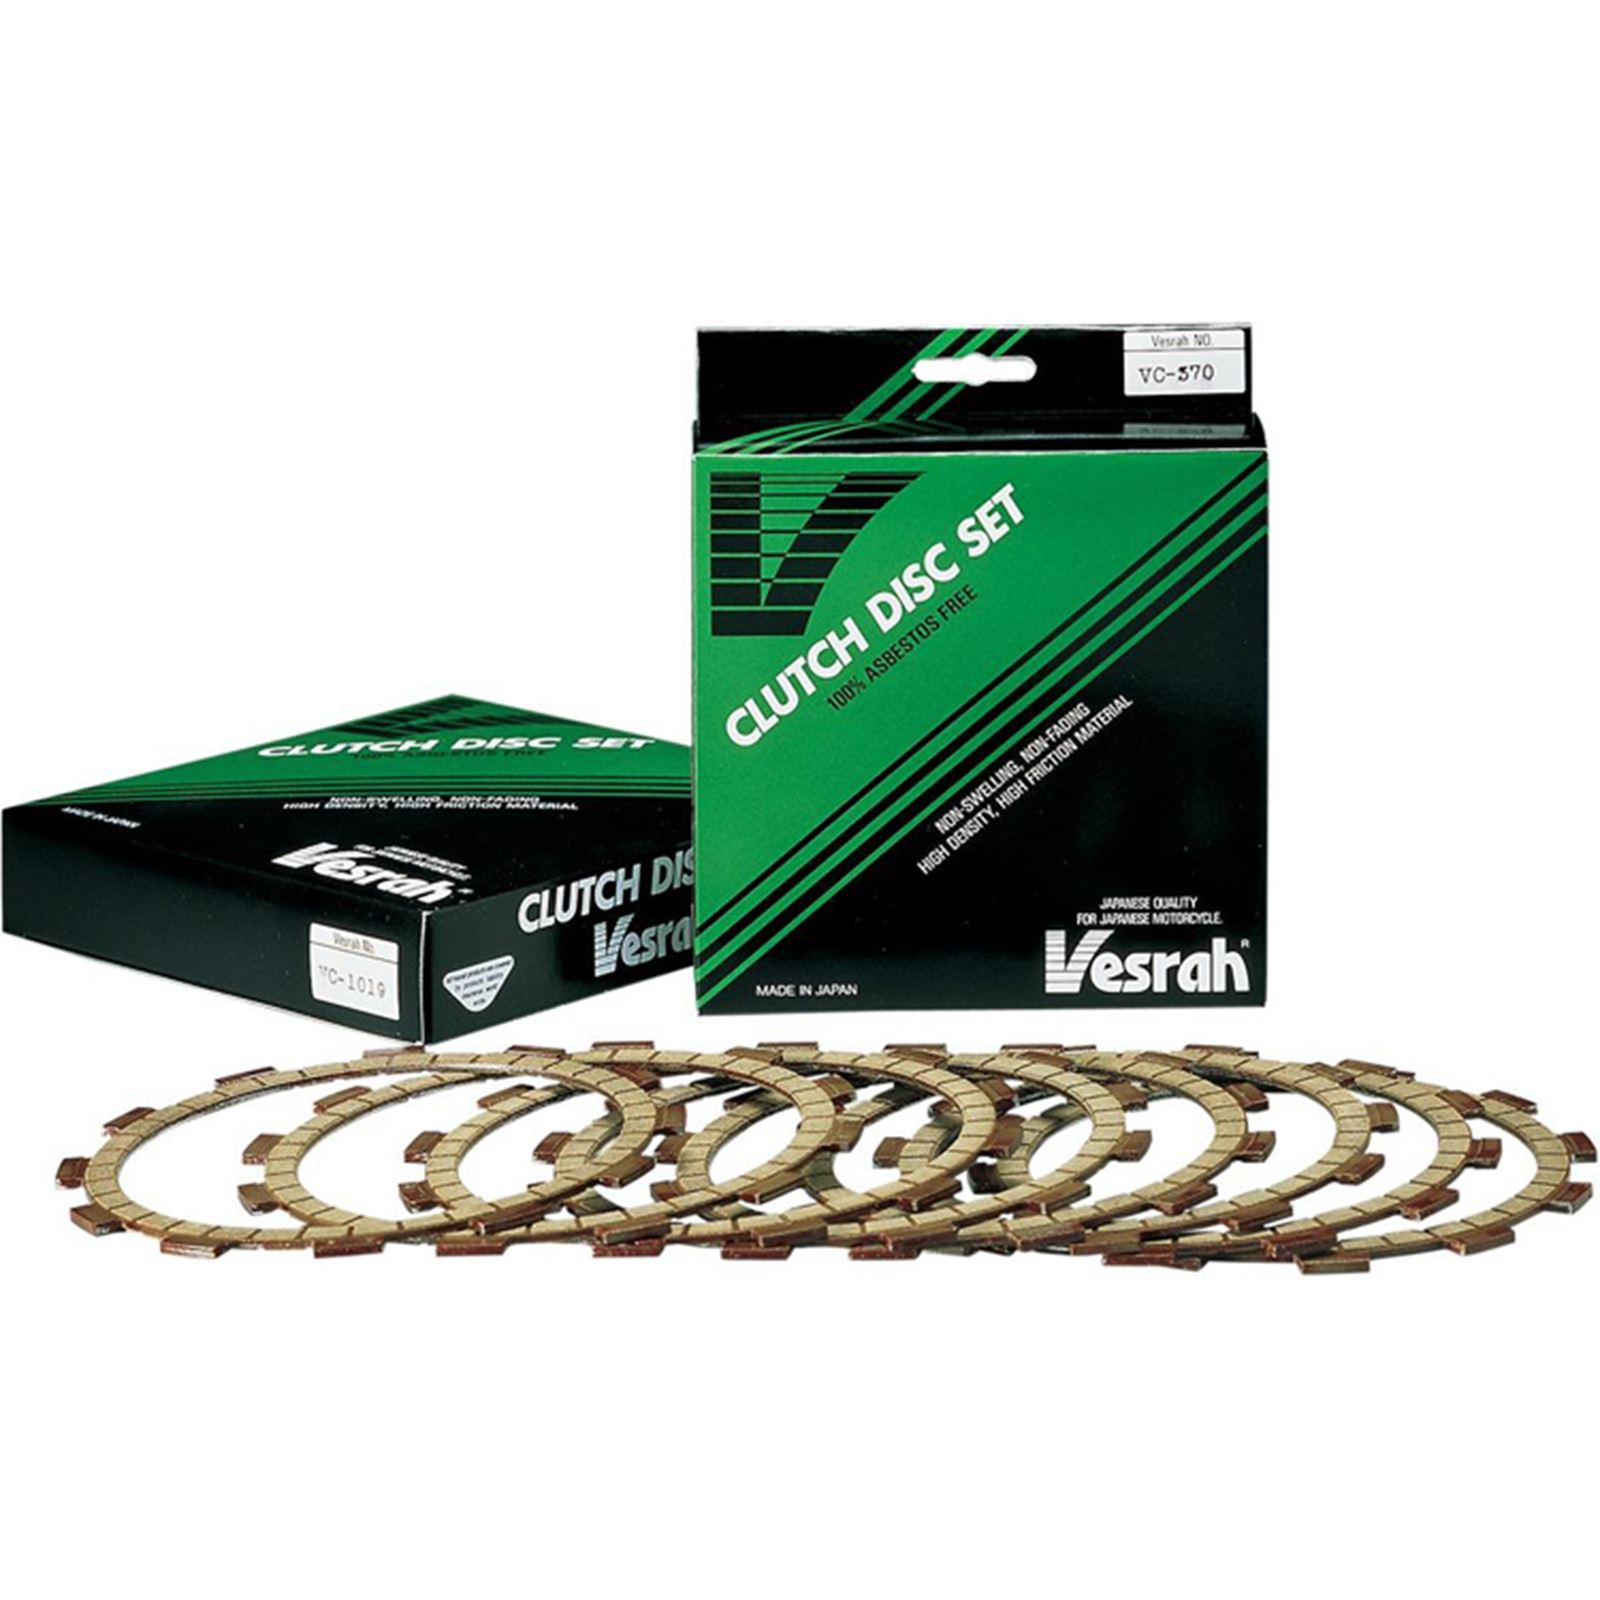 Vesrah Clutch Discs - Set of 7